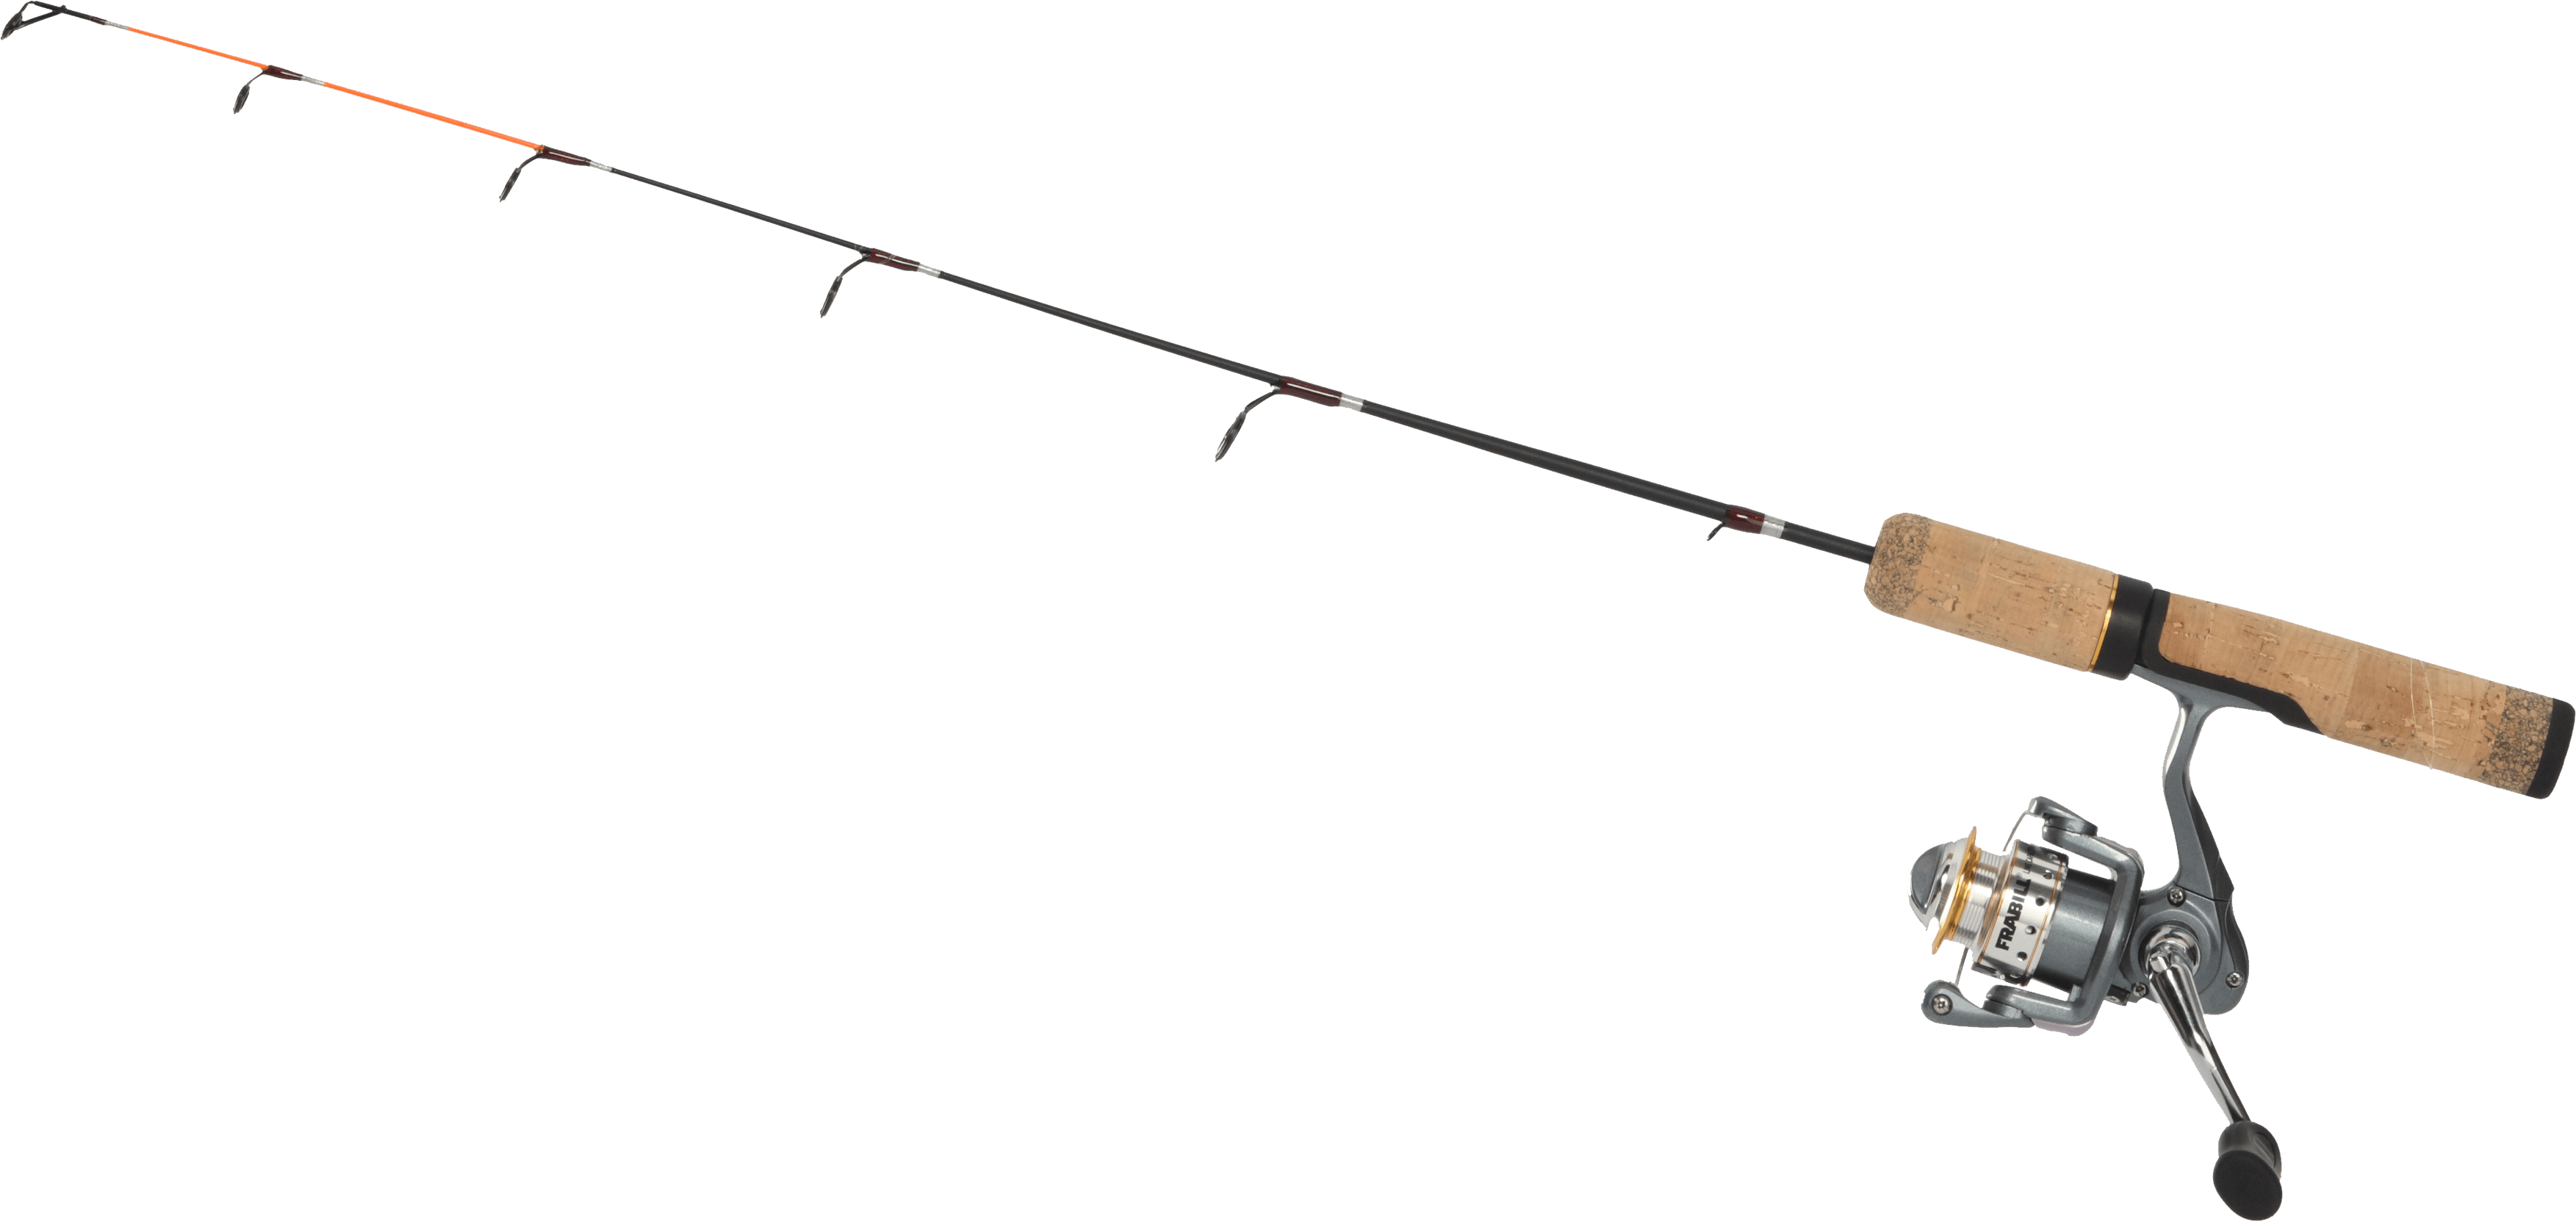 Fishing Pole Transparent Png Stickpng